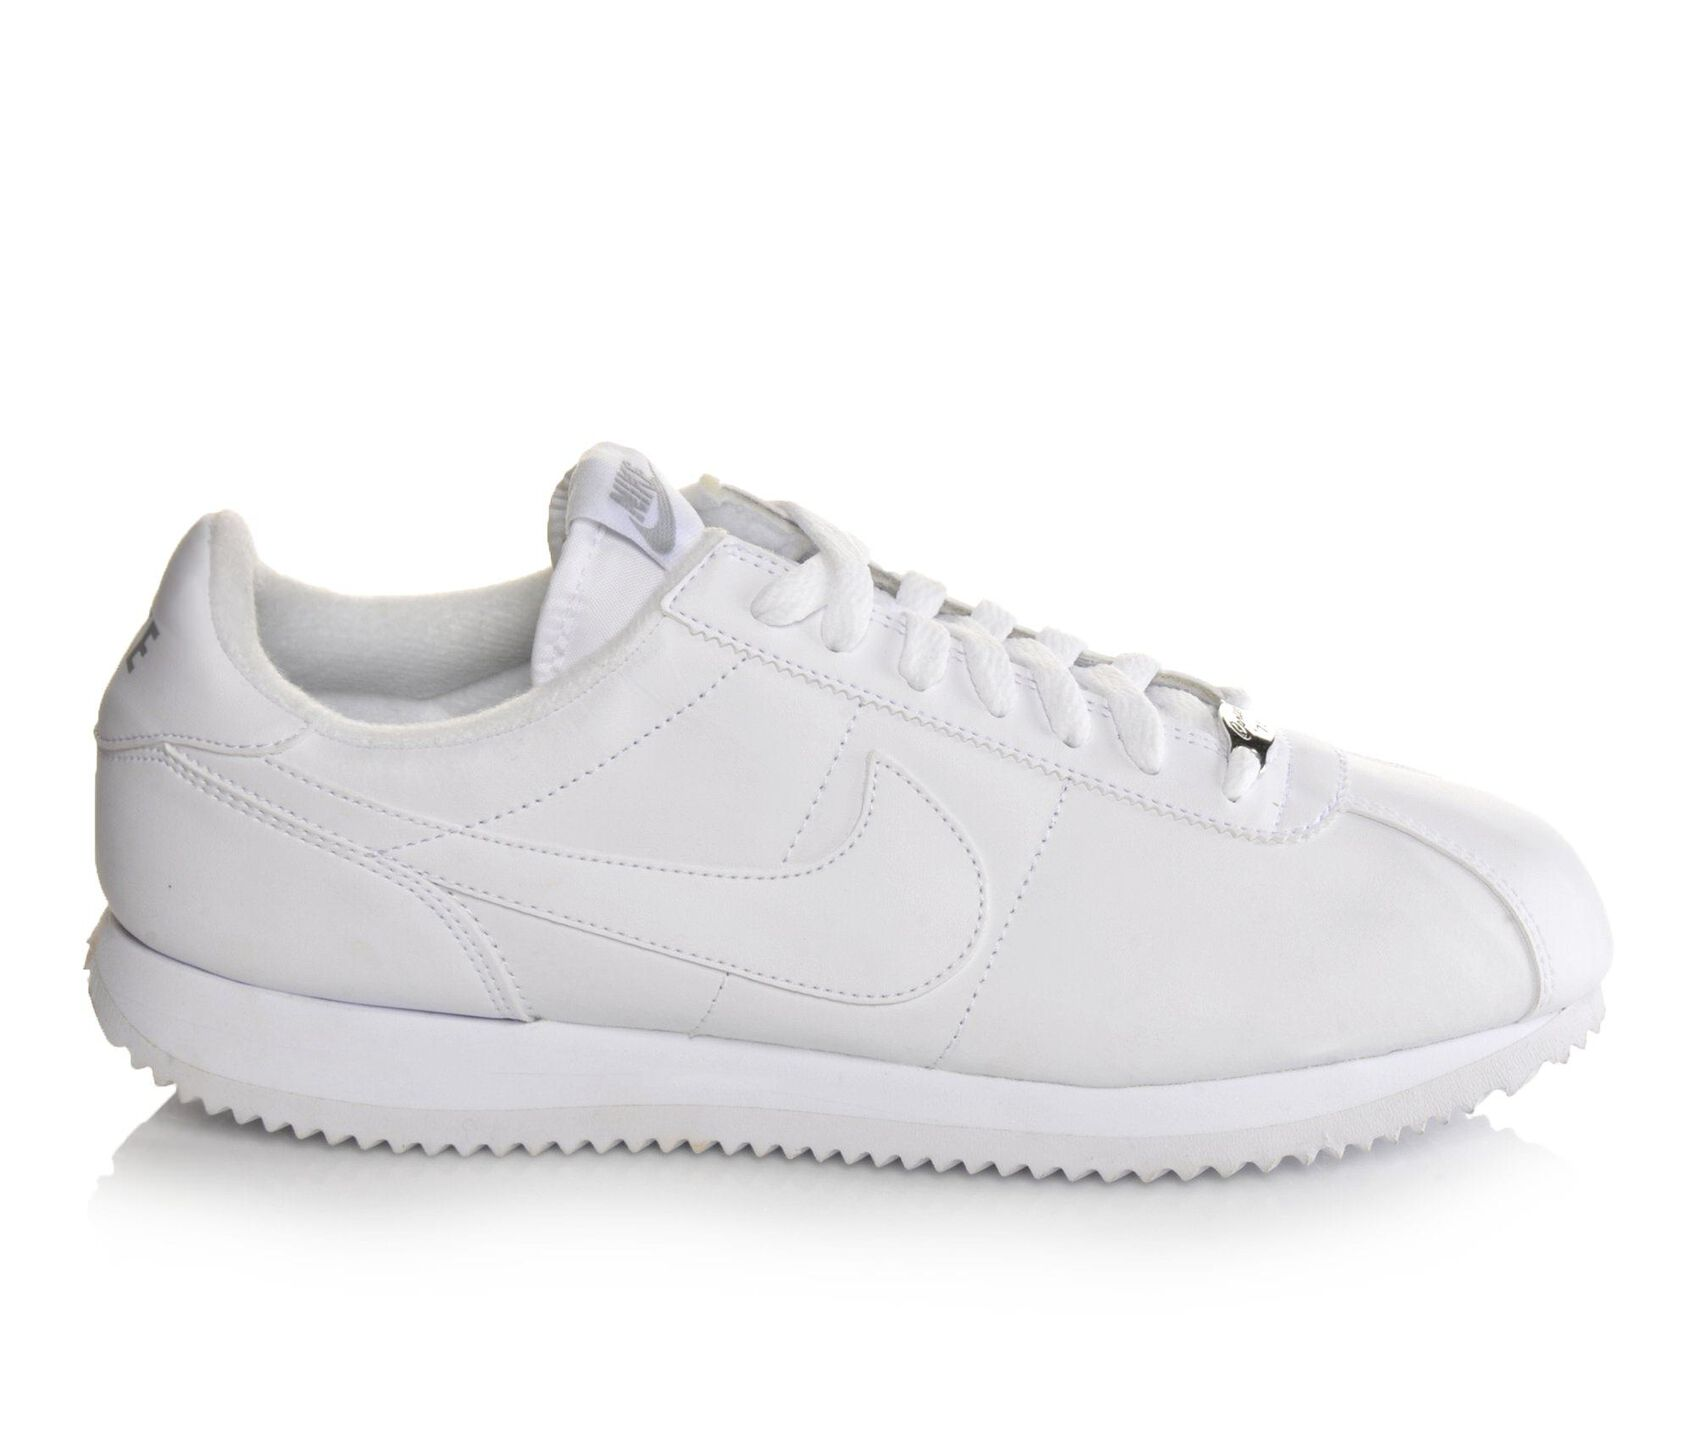 official photos e247b 7ed77 Men's Nike Cortez Basic Leather Sneakers